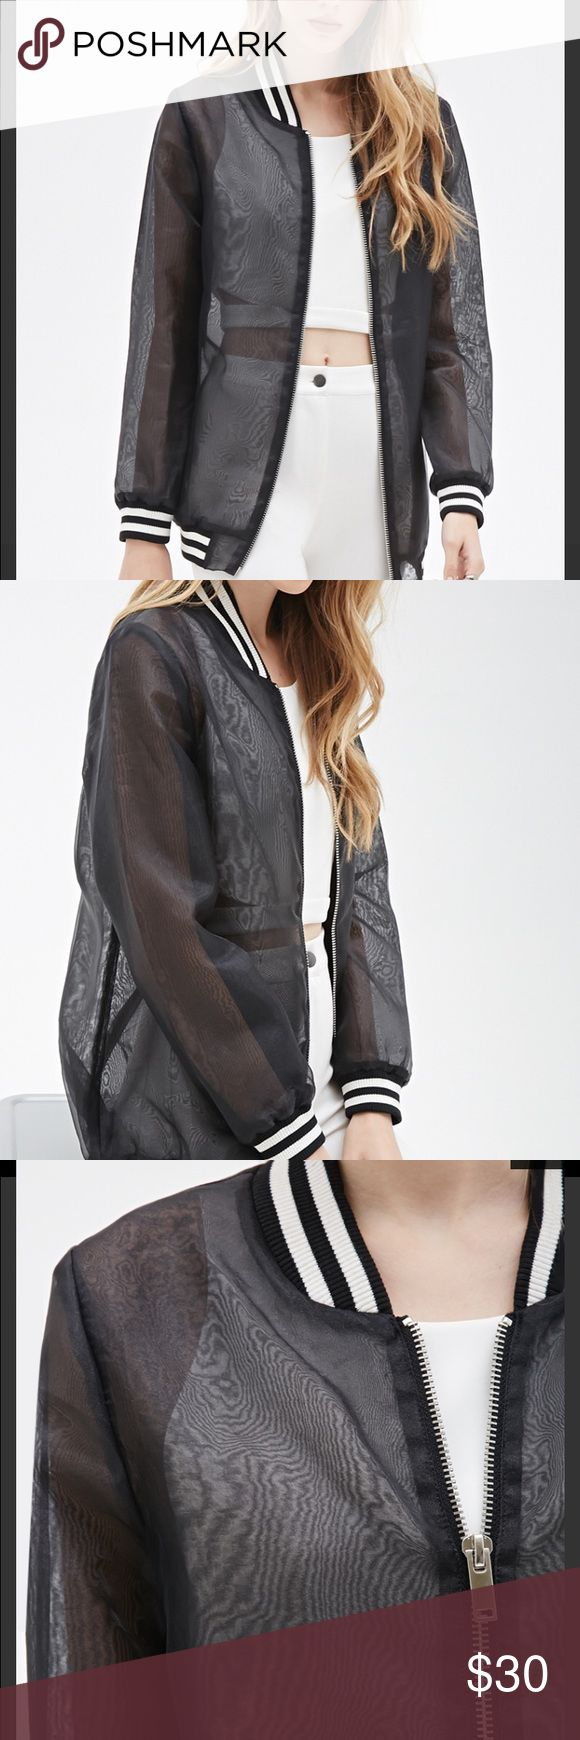 Forever 21 Organza Bomber Sheer organza varsity jacket. Slightly oversized fit, zipper closure. Chic piece that looks expensive! Excellent condition, never worn. 3rd pic is just styling suggestions, not the same jacket! Forever 21 Jackets & Coats